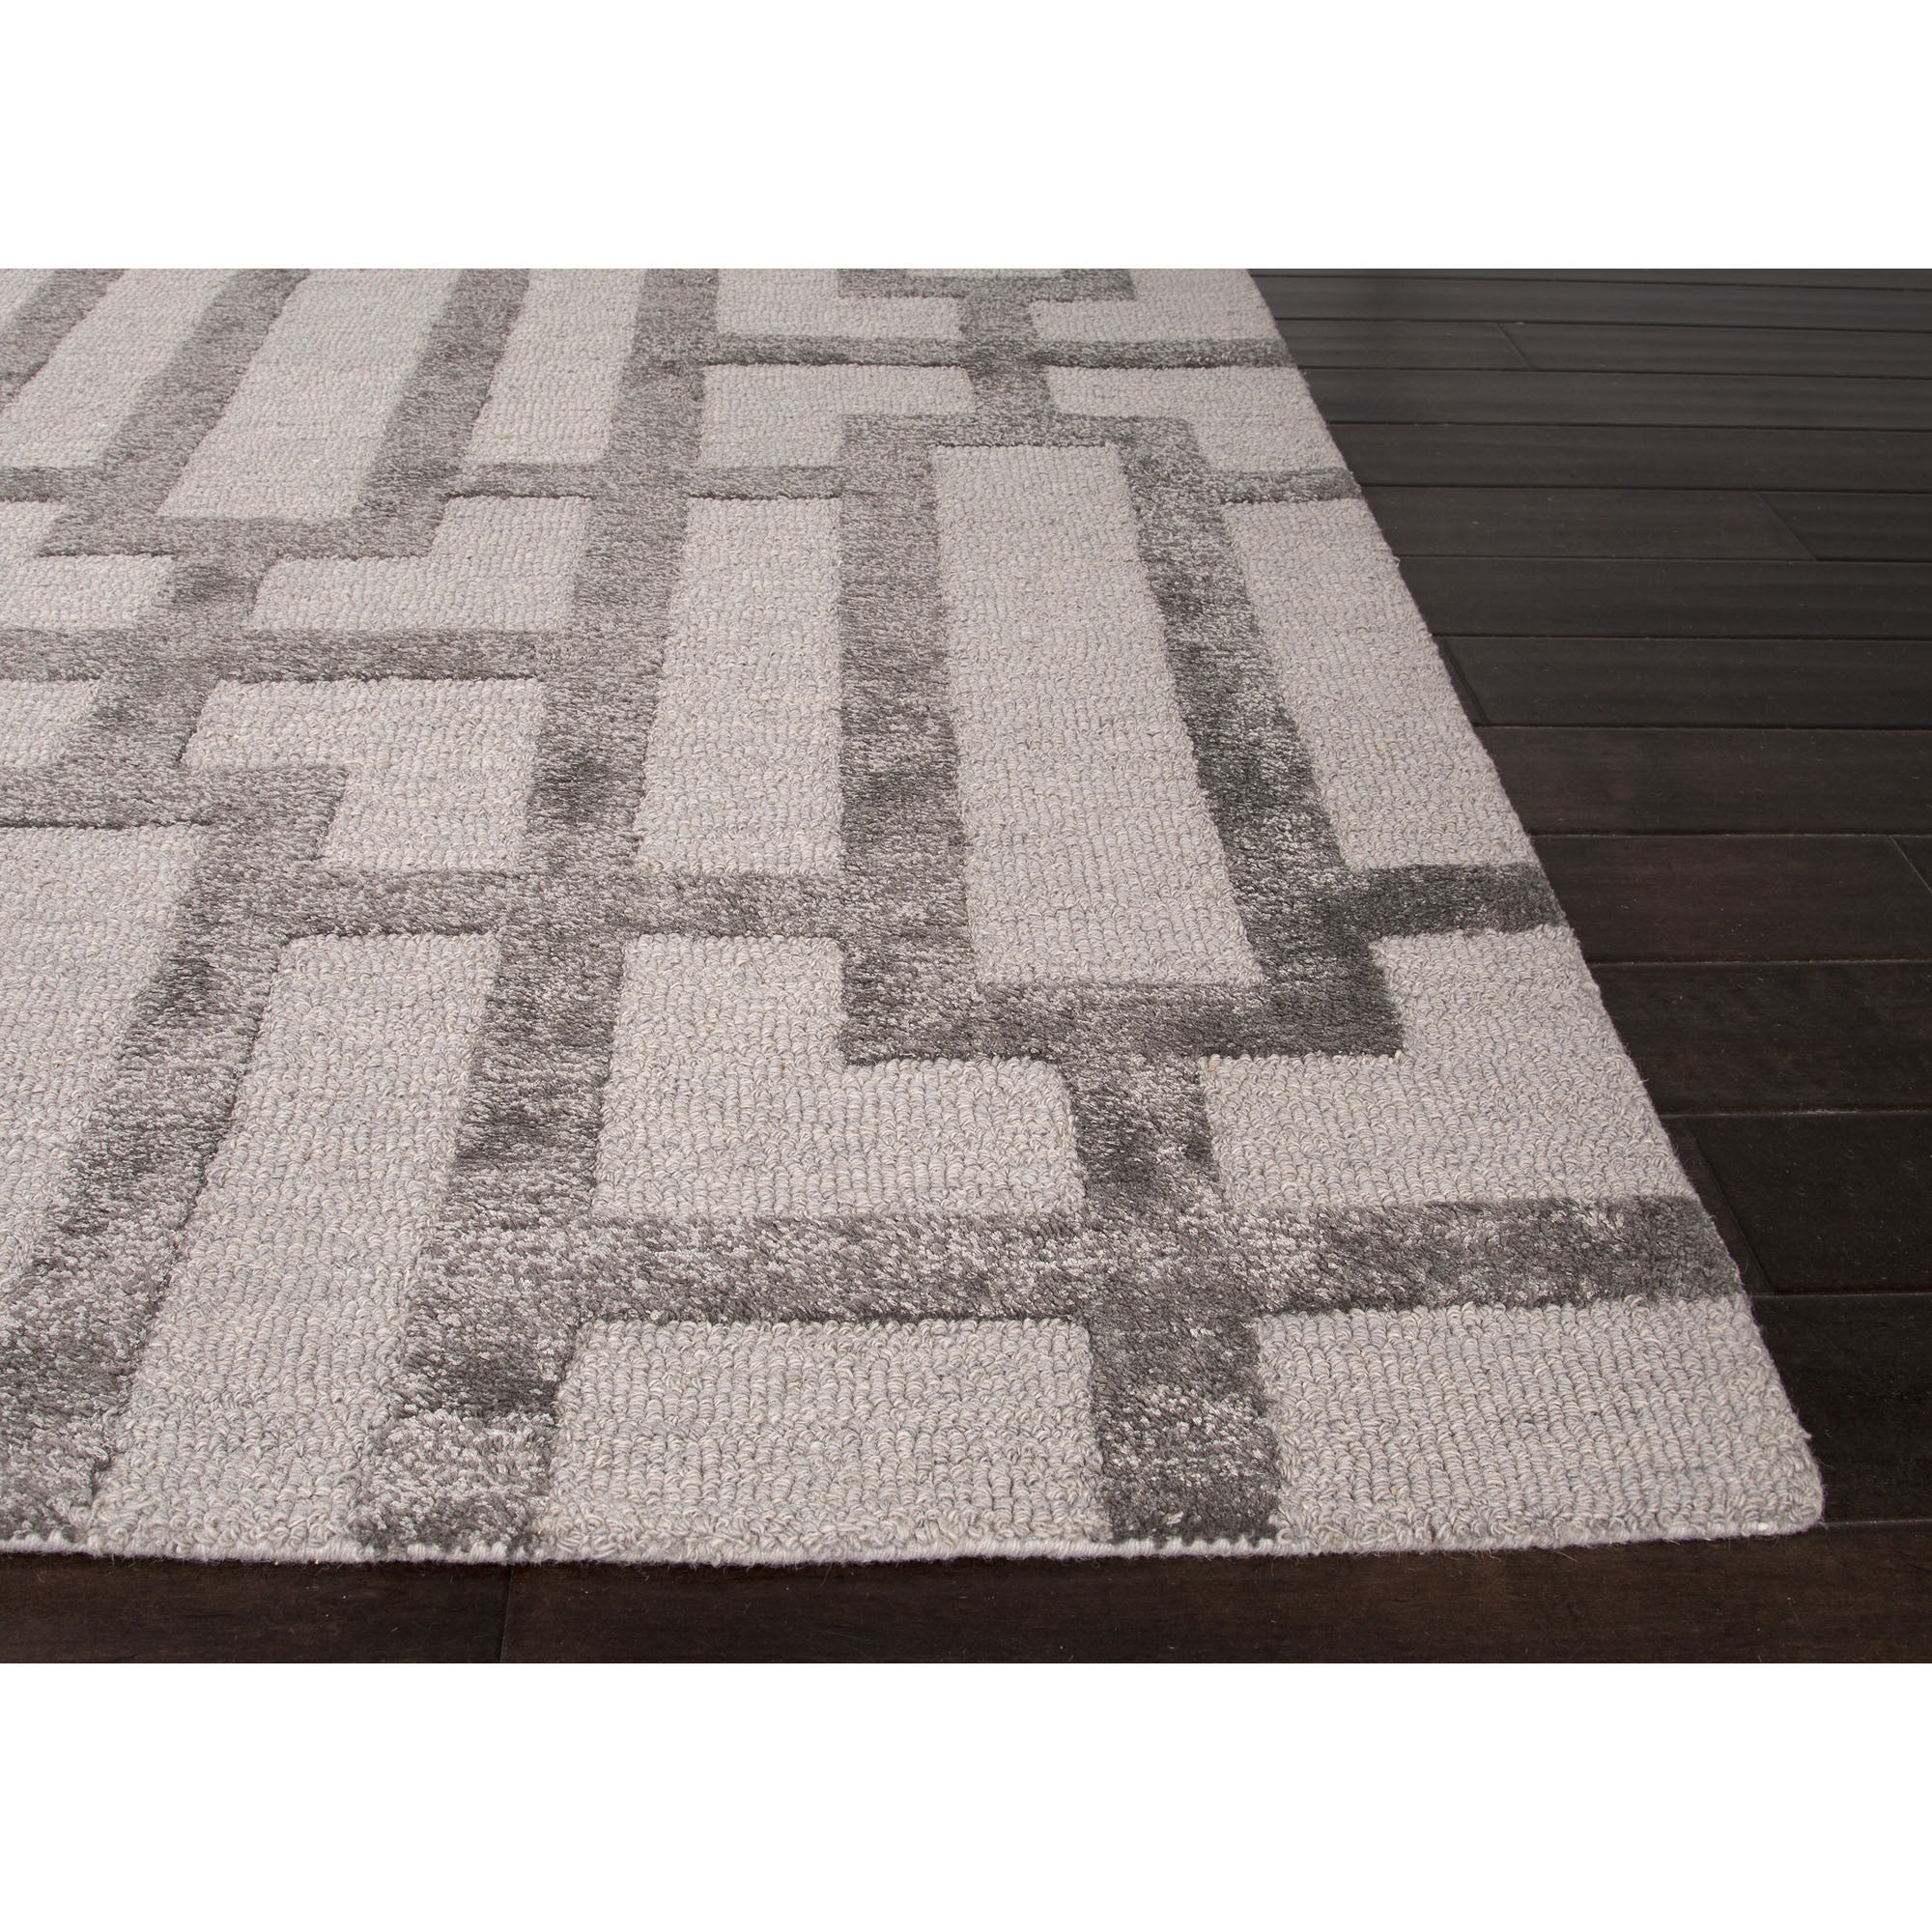 Jaipur rugs modern geometric pattern ivory gray wool and for Modern wool area rugs